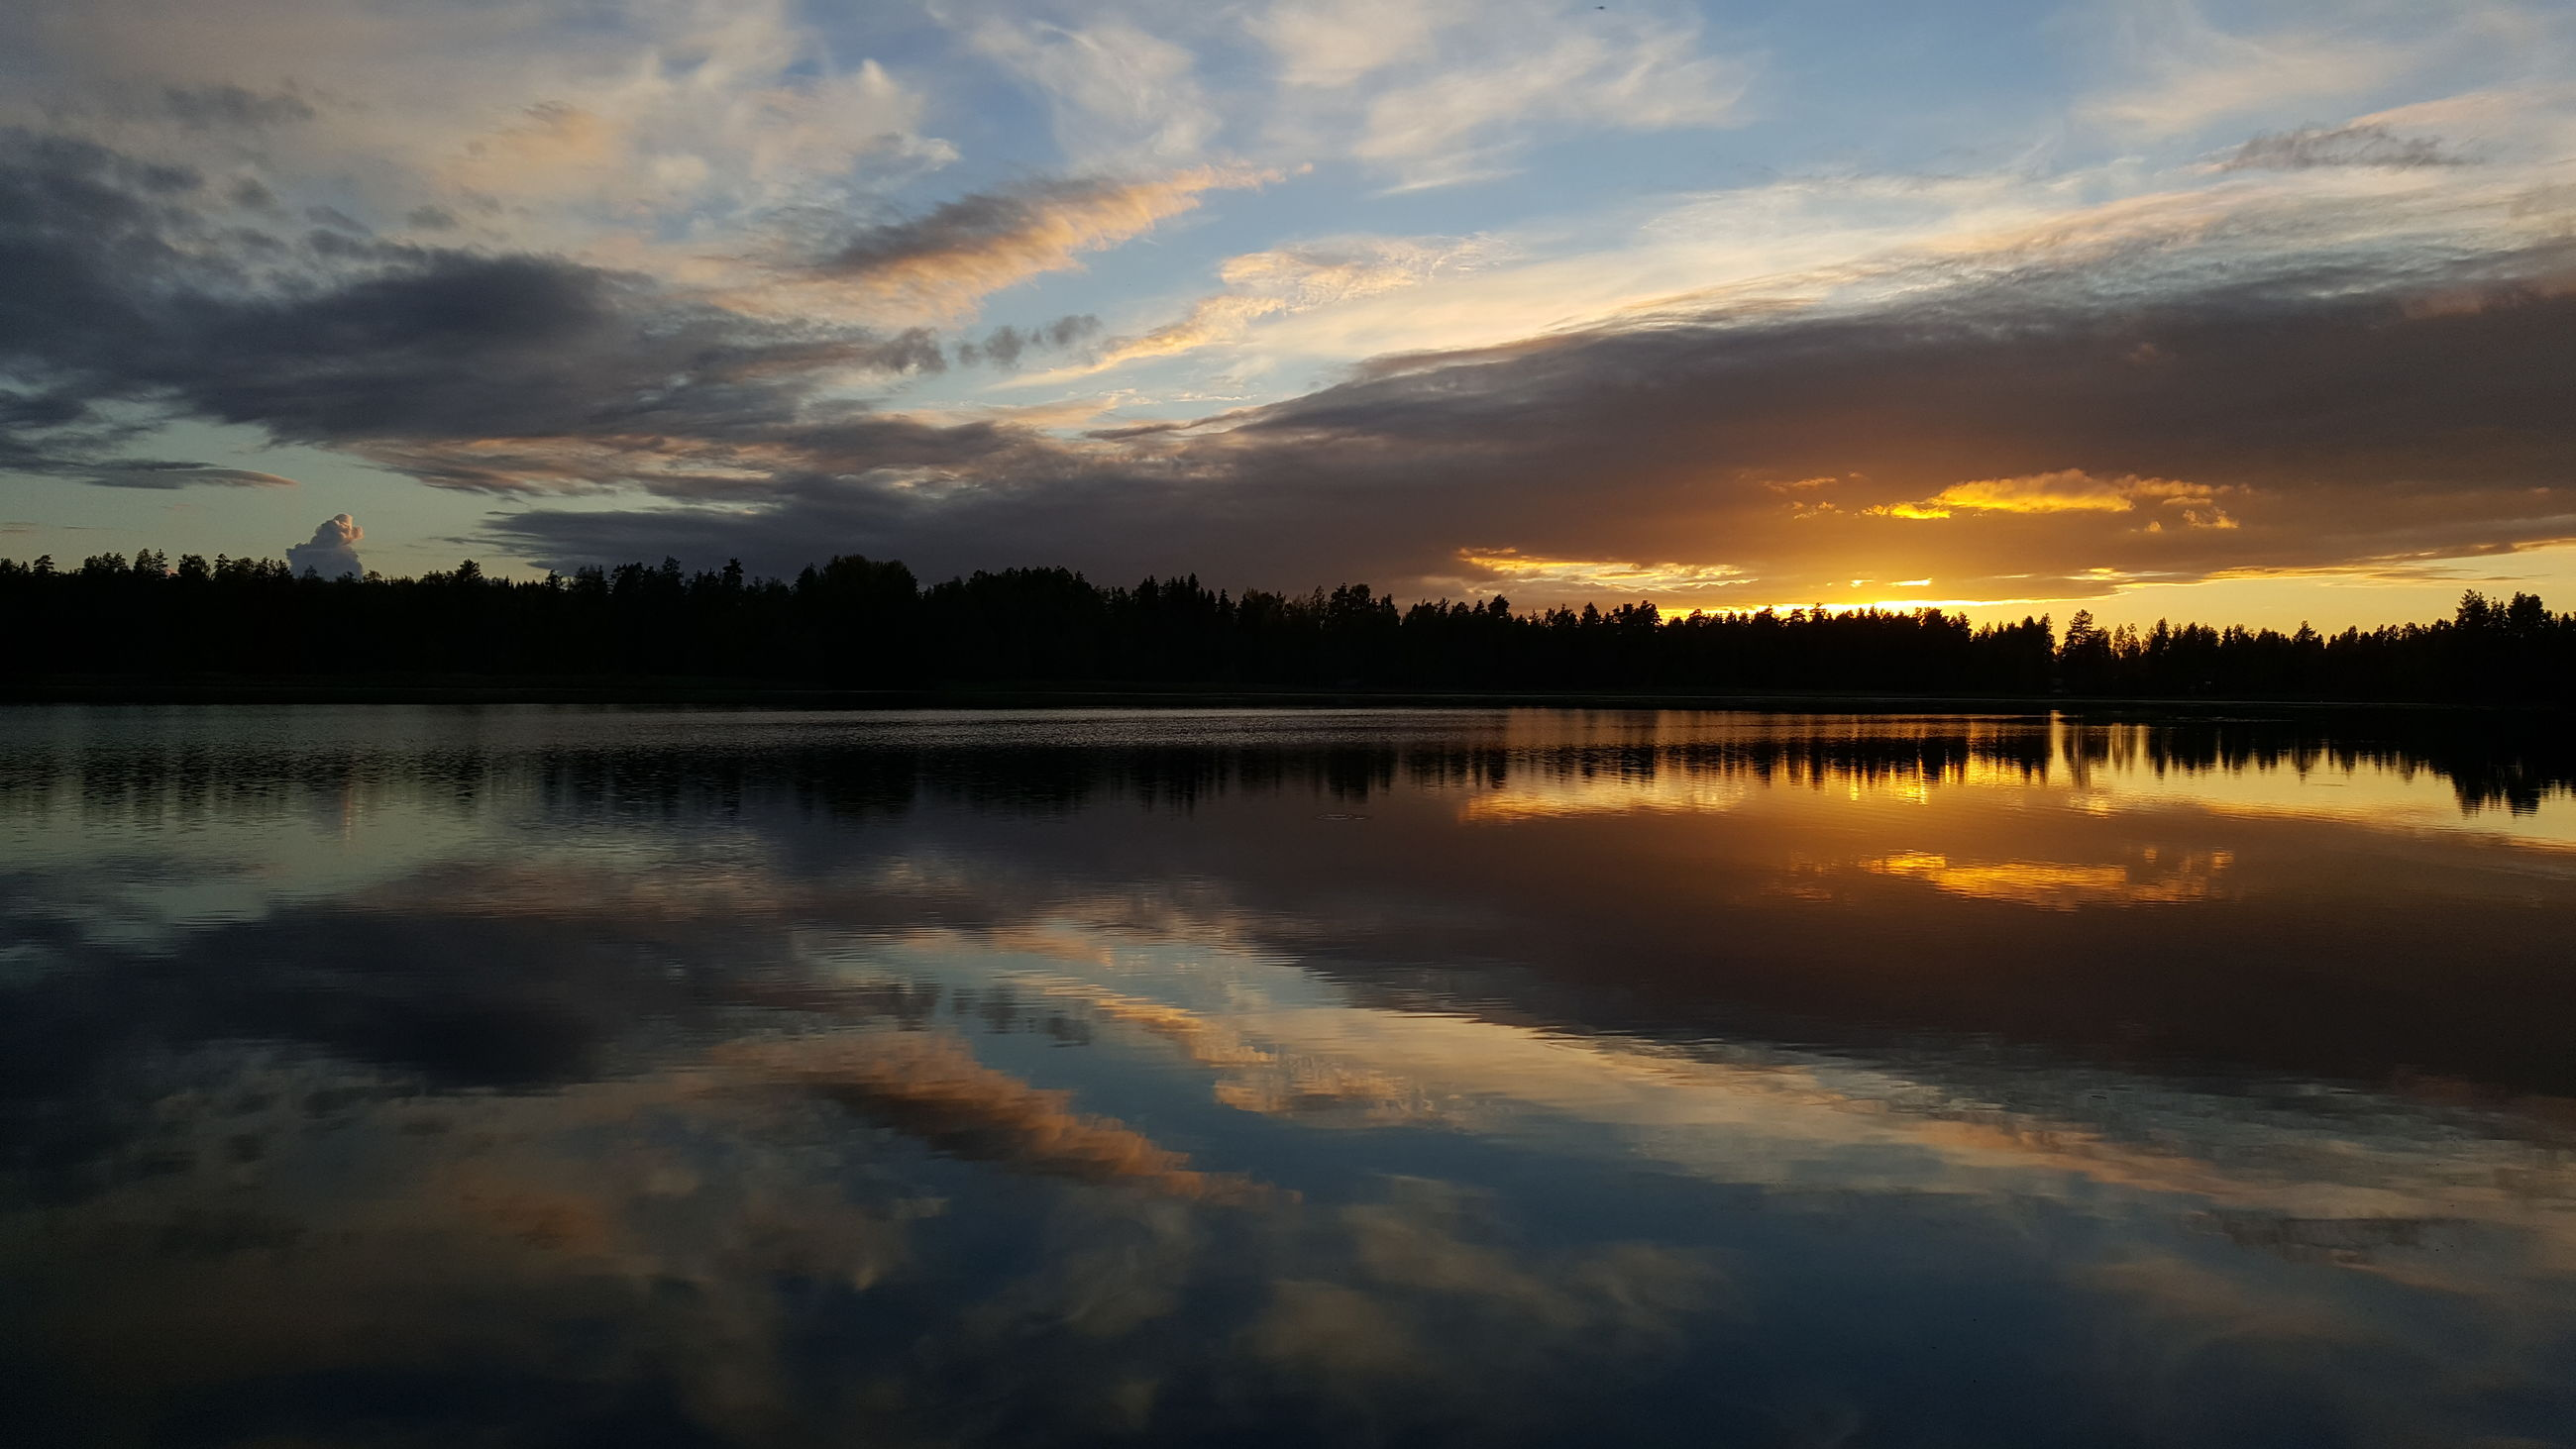 sunset, reflection, cloud - sky, sky, water, beauty in nature, nature, scenics, tranquil scene, silhouette, tranquility, no people, outdoors, tree, lake, day